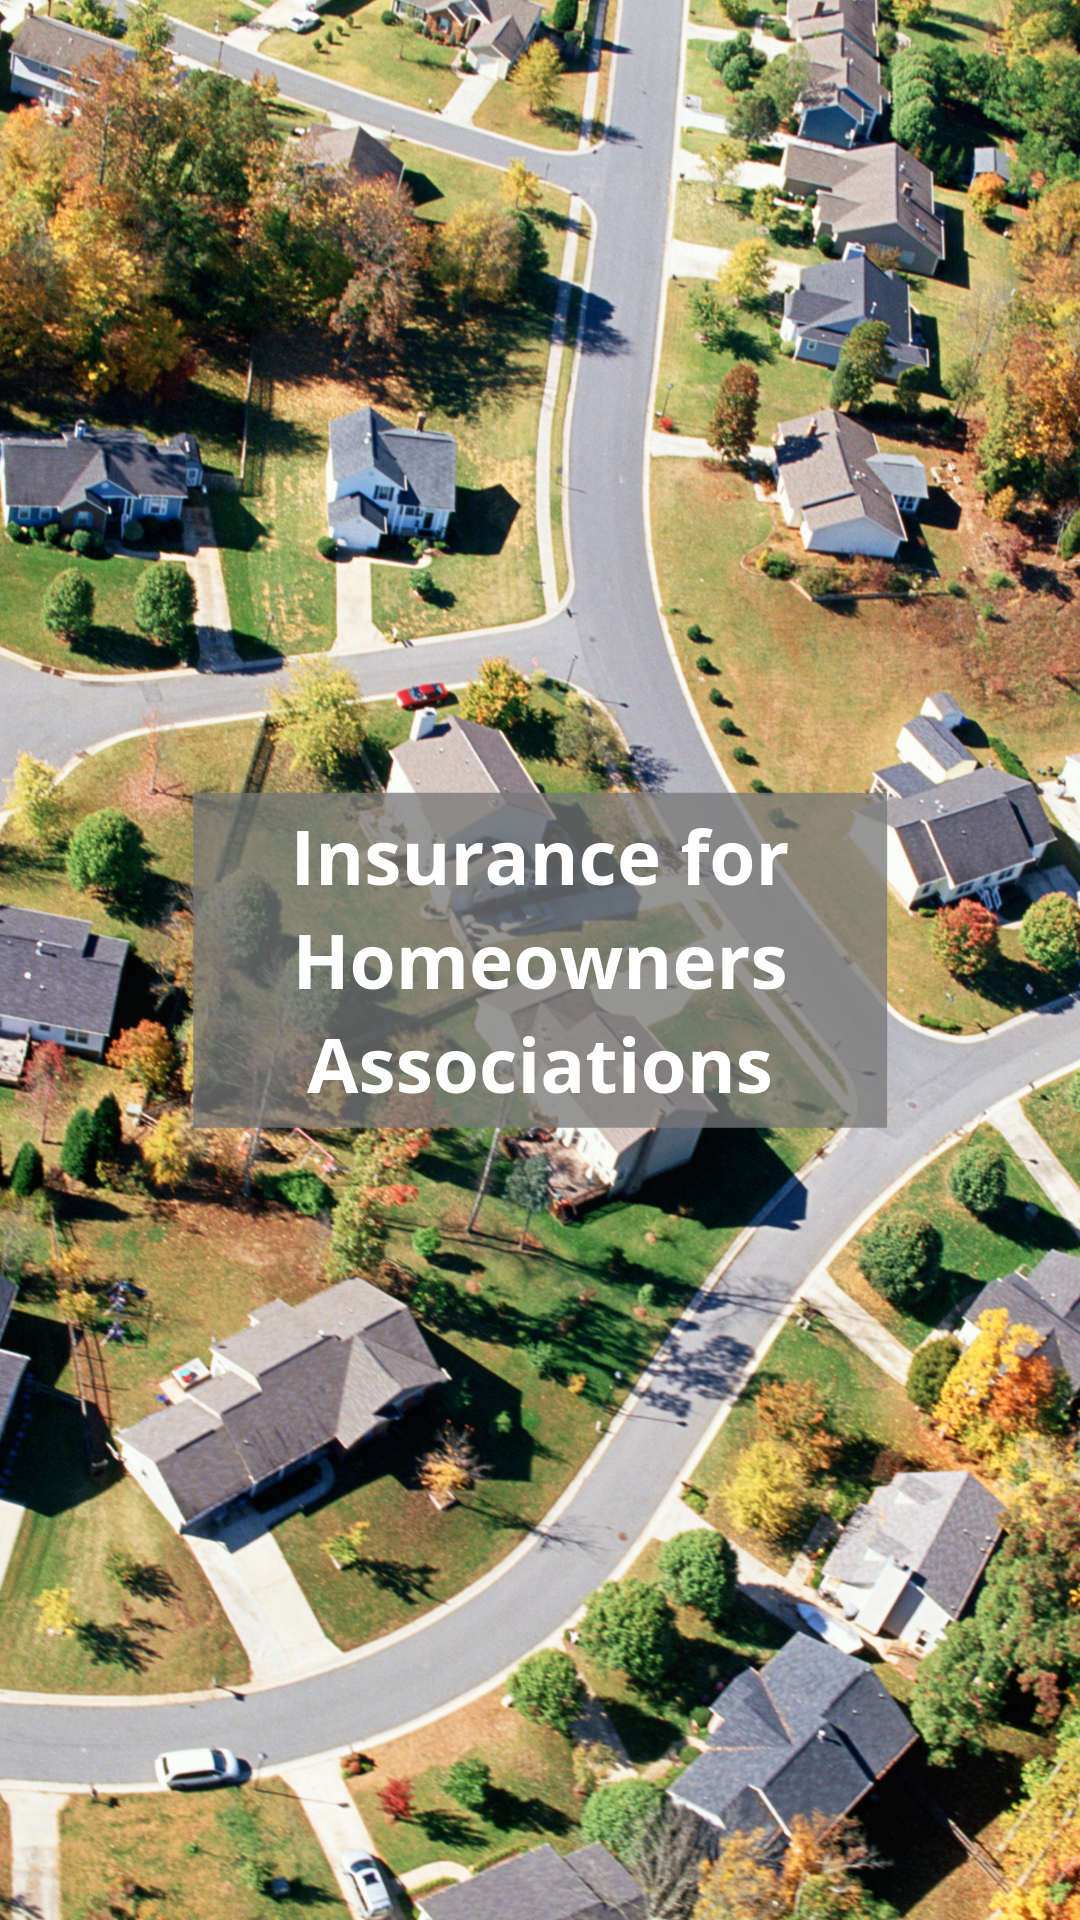 Insurance For Condominium And Homeowner Associations Can Be